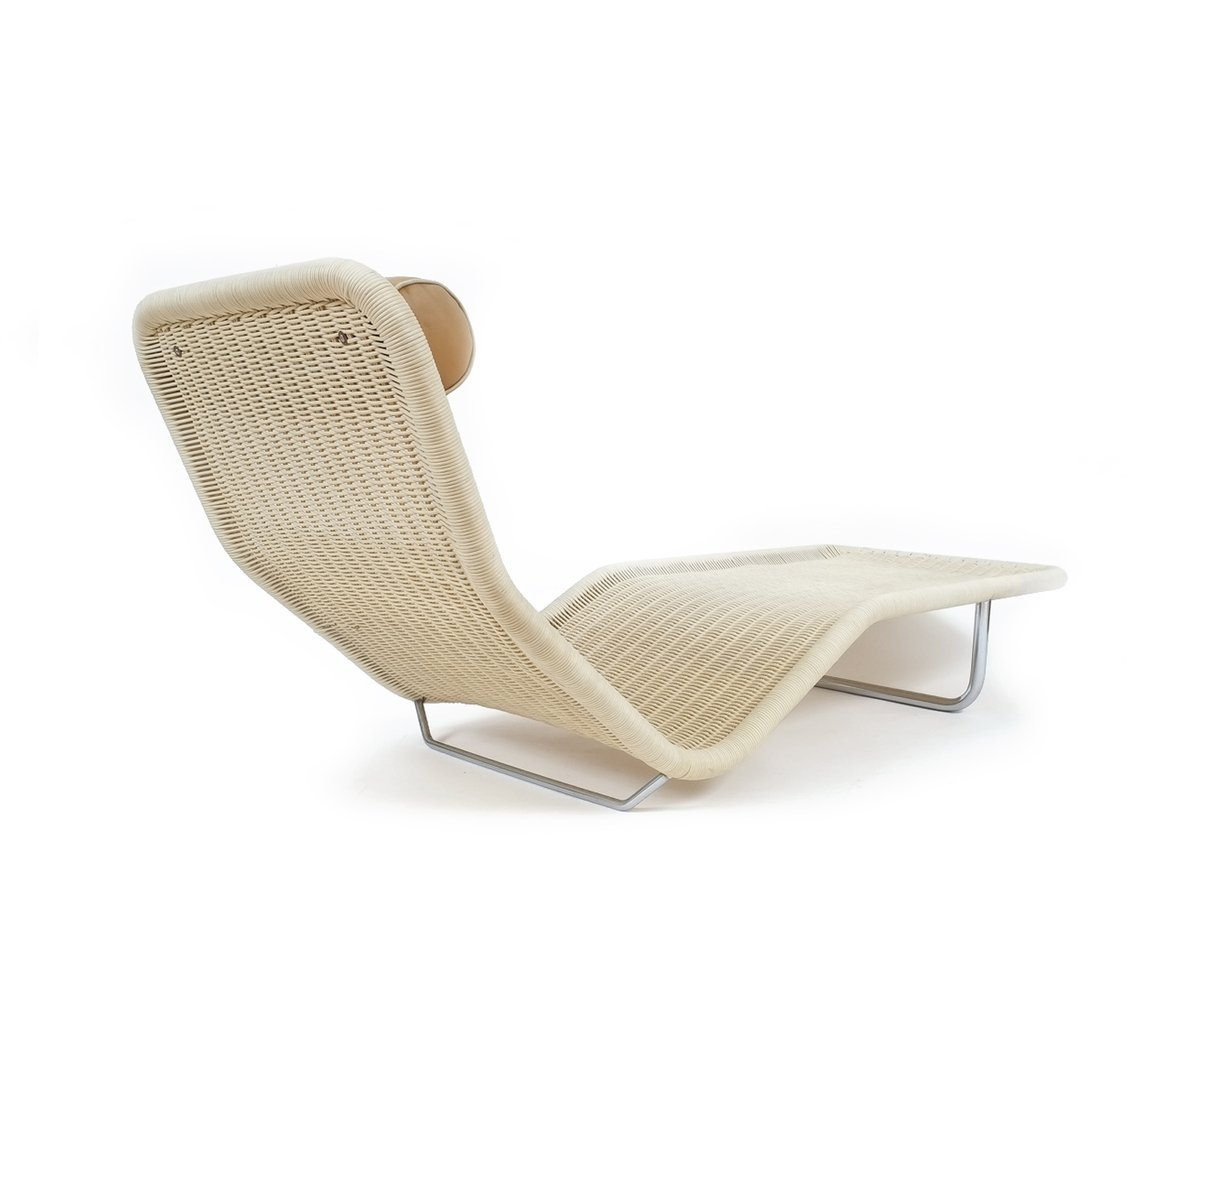 Chaise longue by antti nurmesniemi 1960s for sale at pamono for Chaise longue for sale